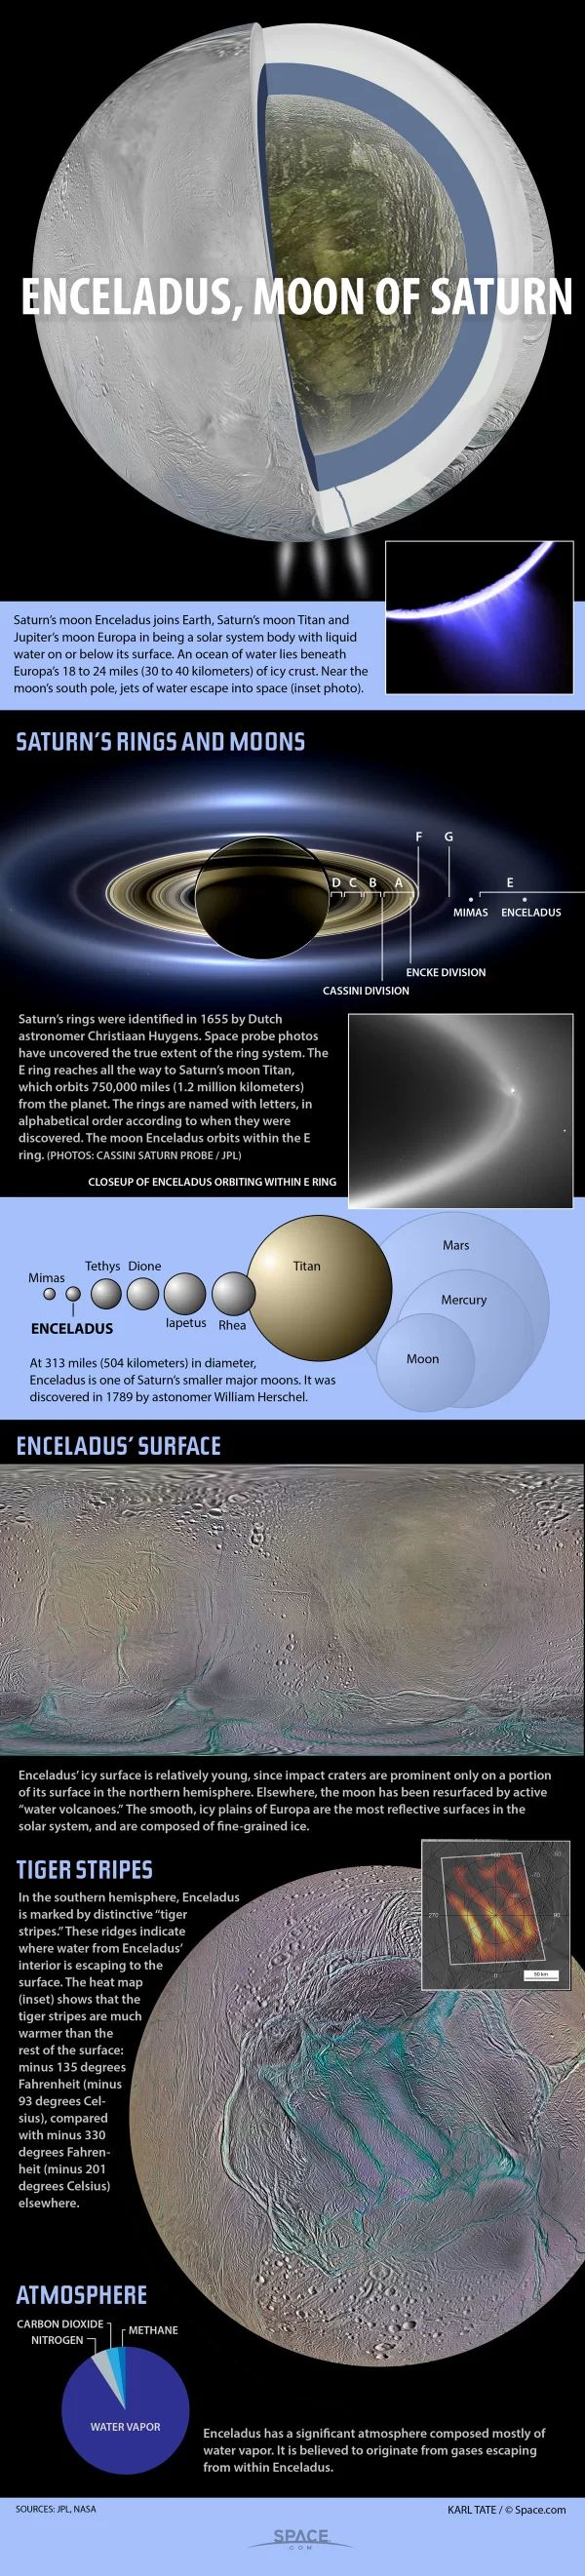 Inside Enceladus, Icy Moon of Saturn (Infographic)